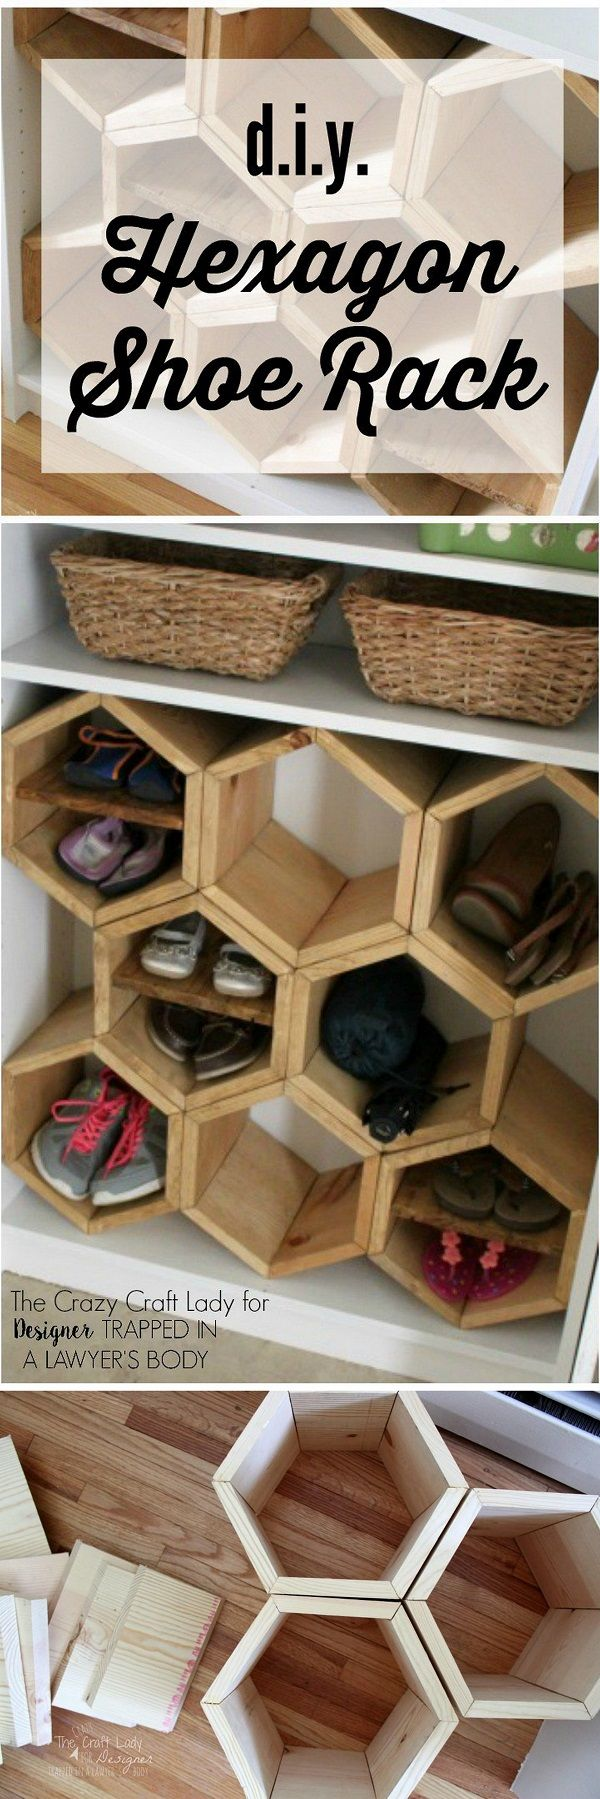 Faire Une Etagere A Chaussure check out how to build your own diy hexagon shoe rack